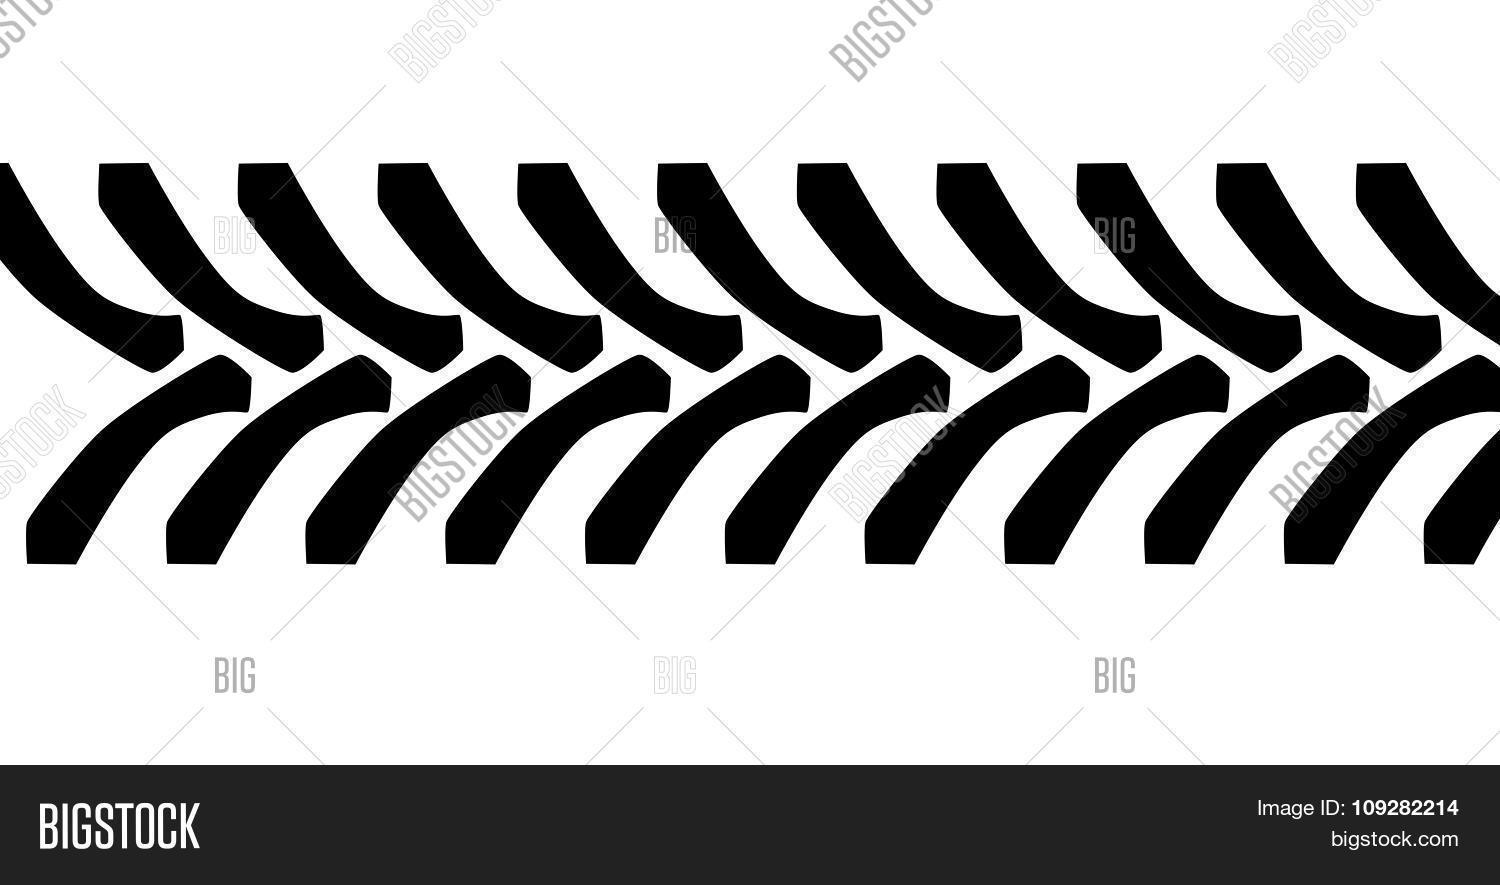 Tractor Tire Tread Vector Amp Photo Free Trial